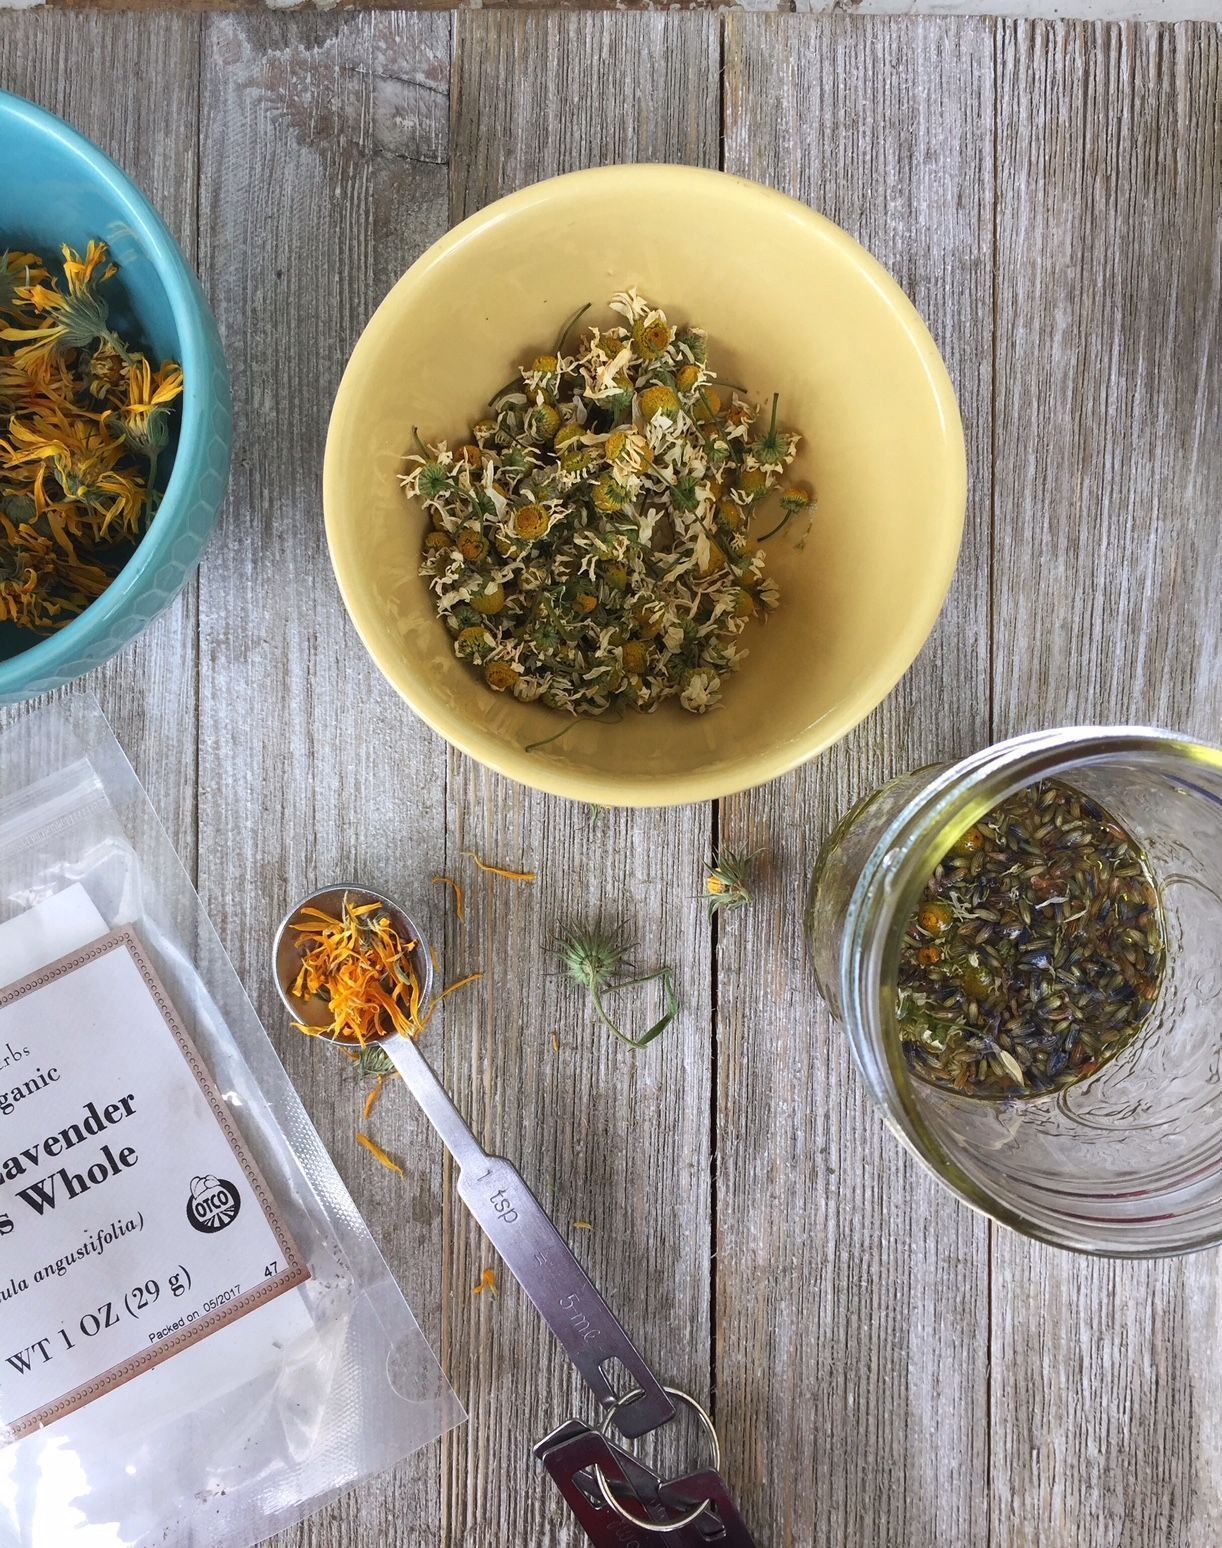 Calming Calendula Face Oil with Lavender & Chamomile | DIY Face Serum for Redness | Herbal Home Remedies | My Healthy Homemade Life | #diy #calendula #skin #AntioxidantFaceSerum #HydratingFaceSerum #FaceScrubHomemade #faceserum